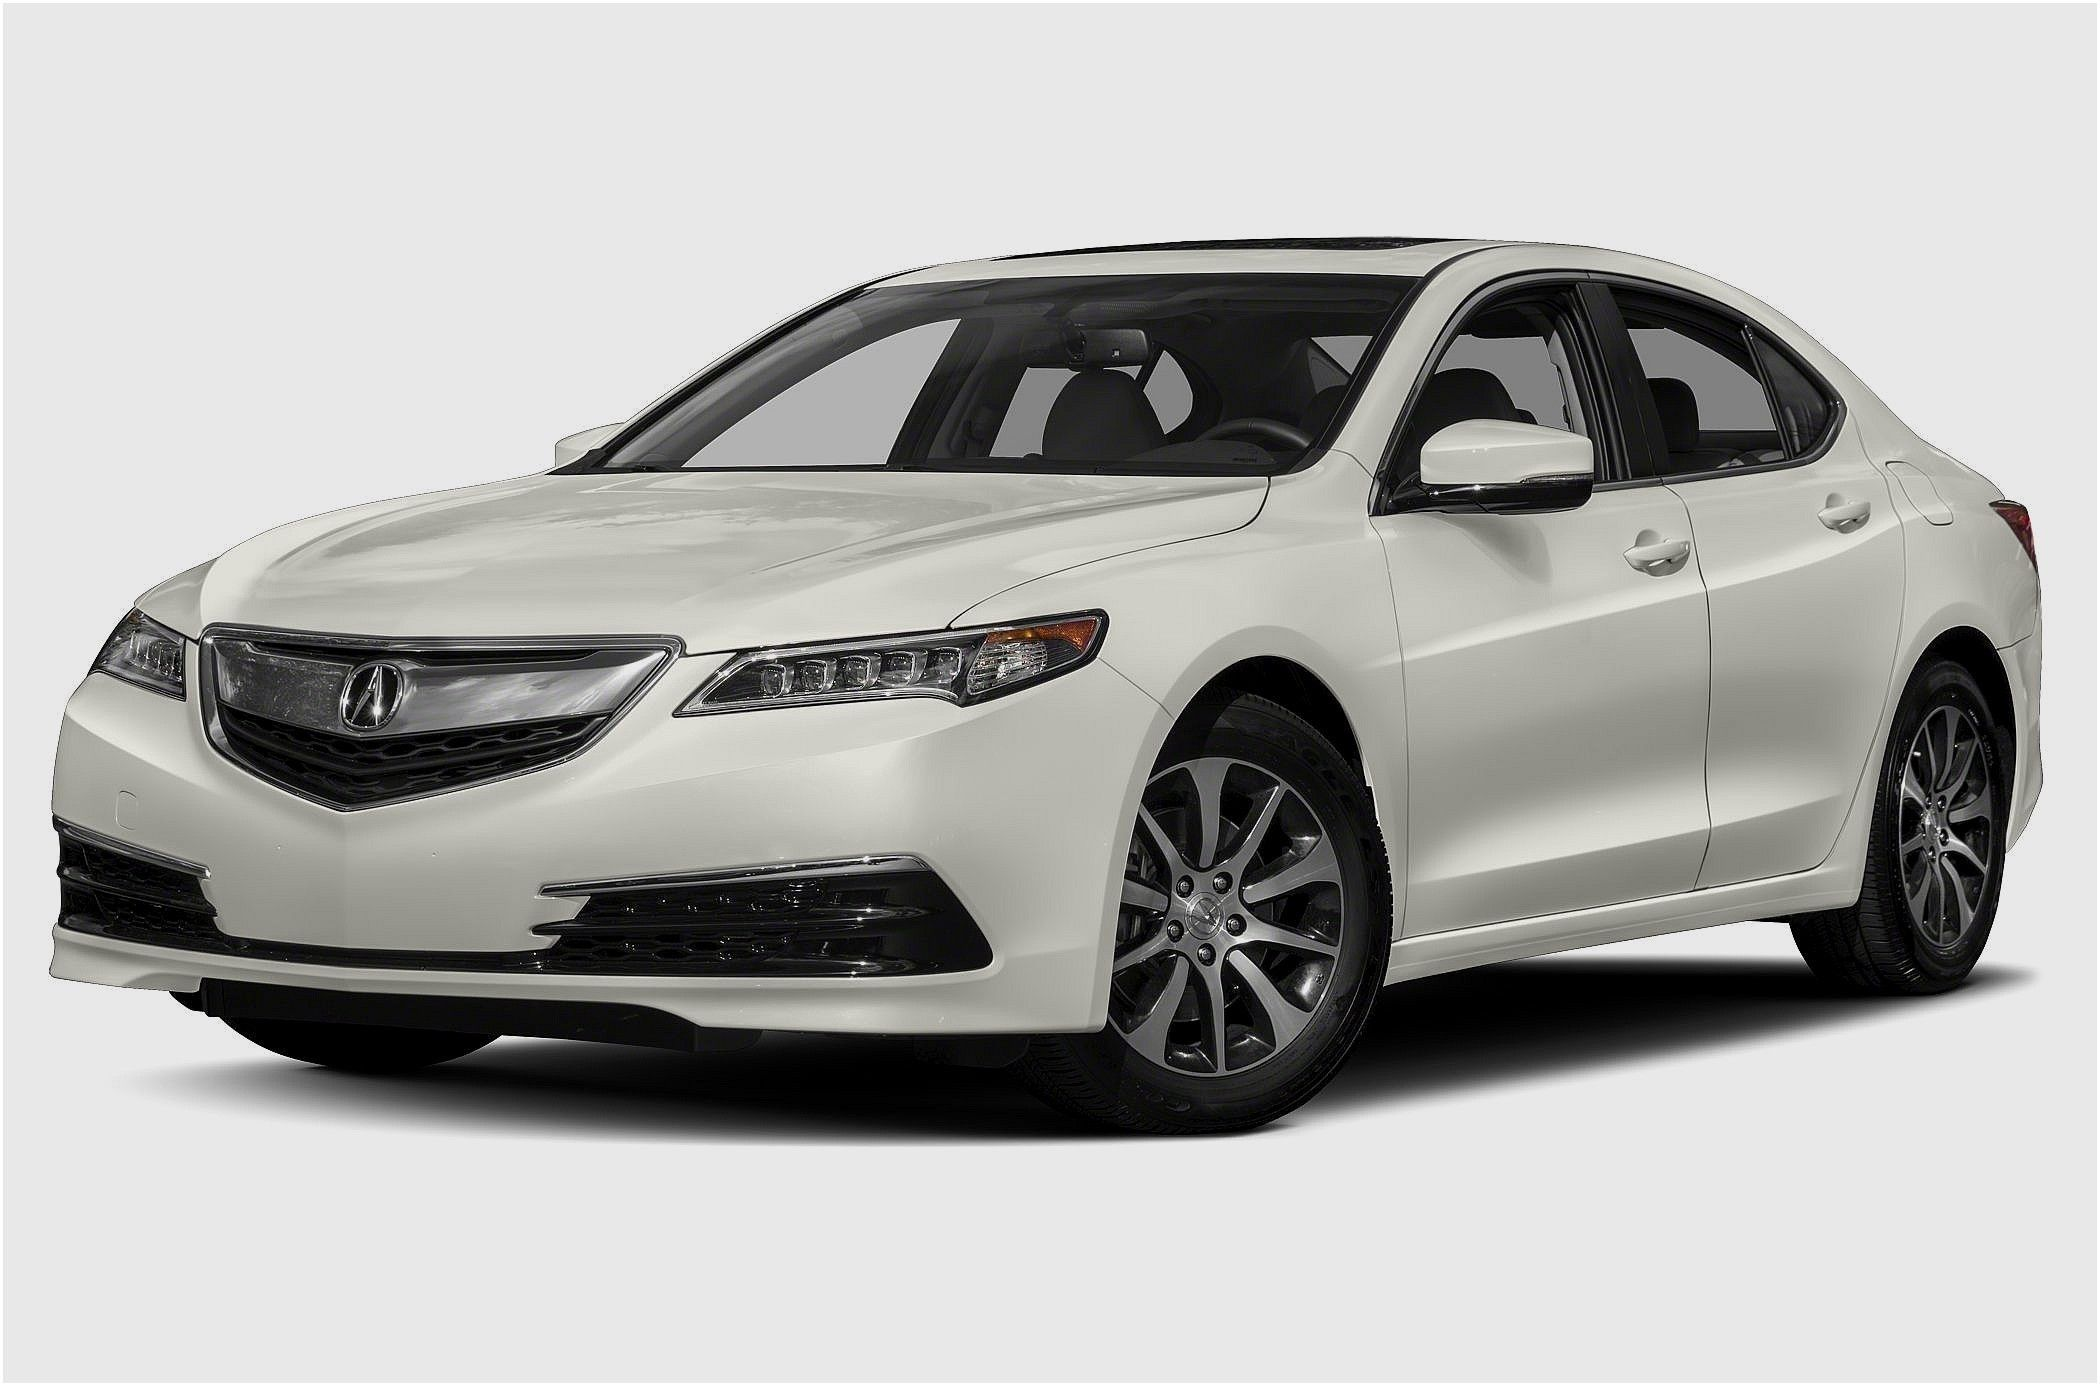 Unique 2015 Acura Tlx (With images) Acura tlx, Acura tl